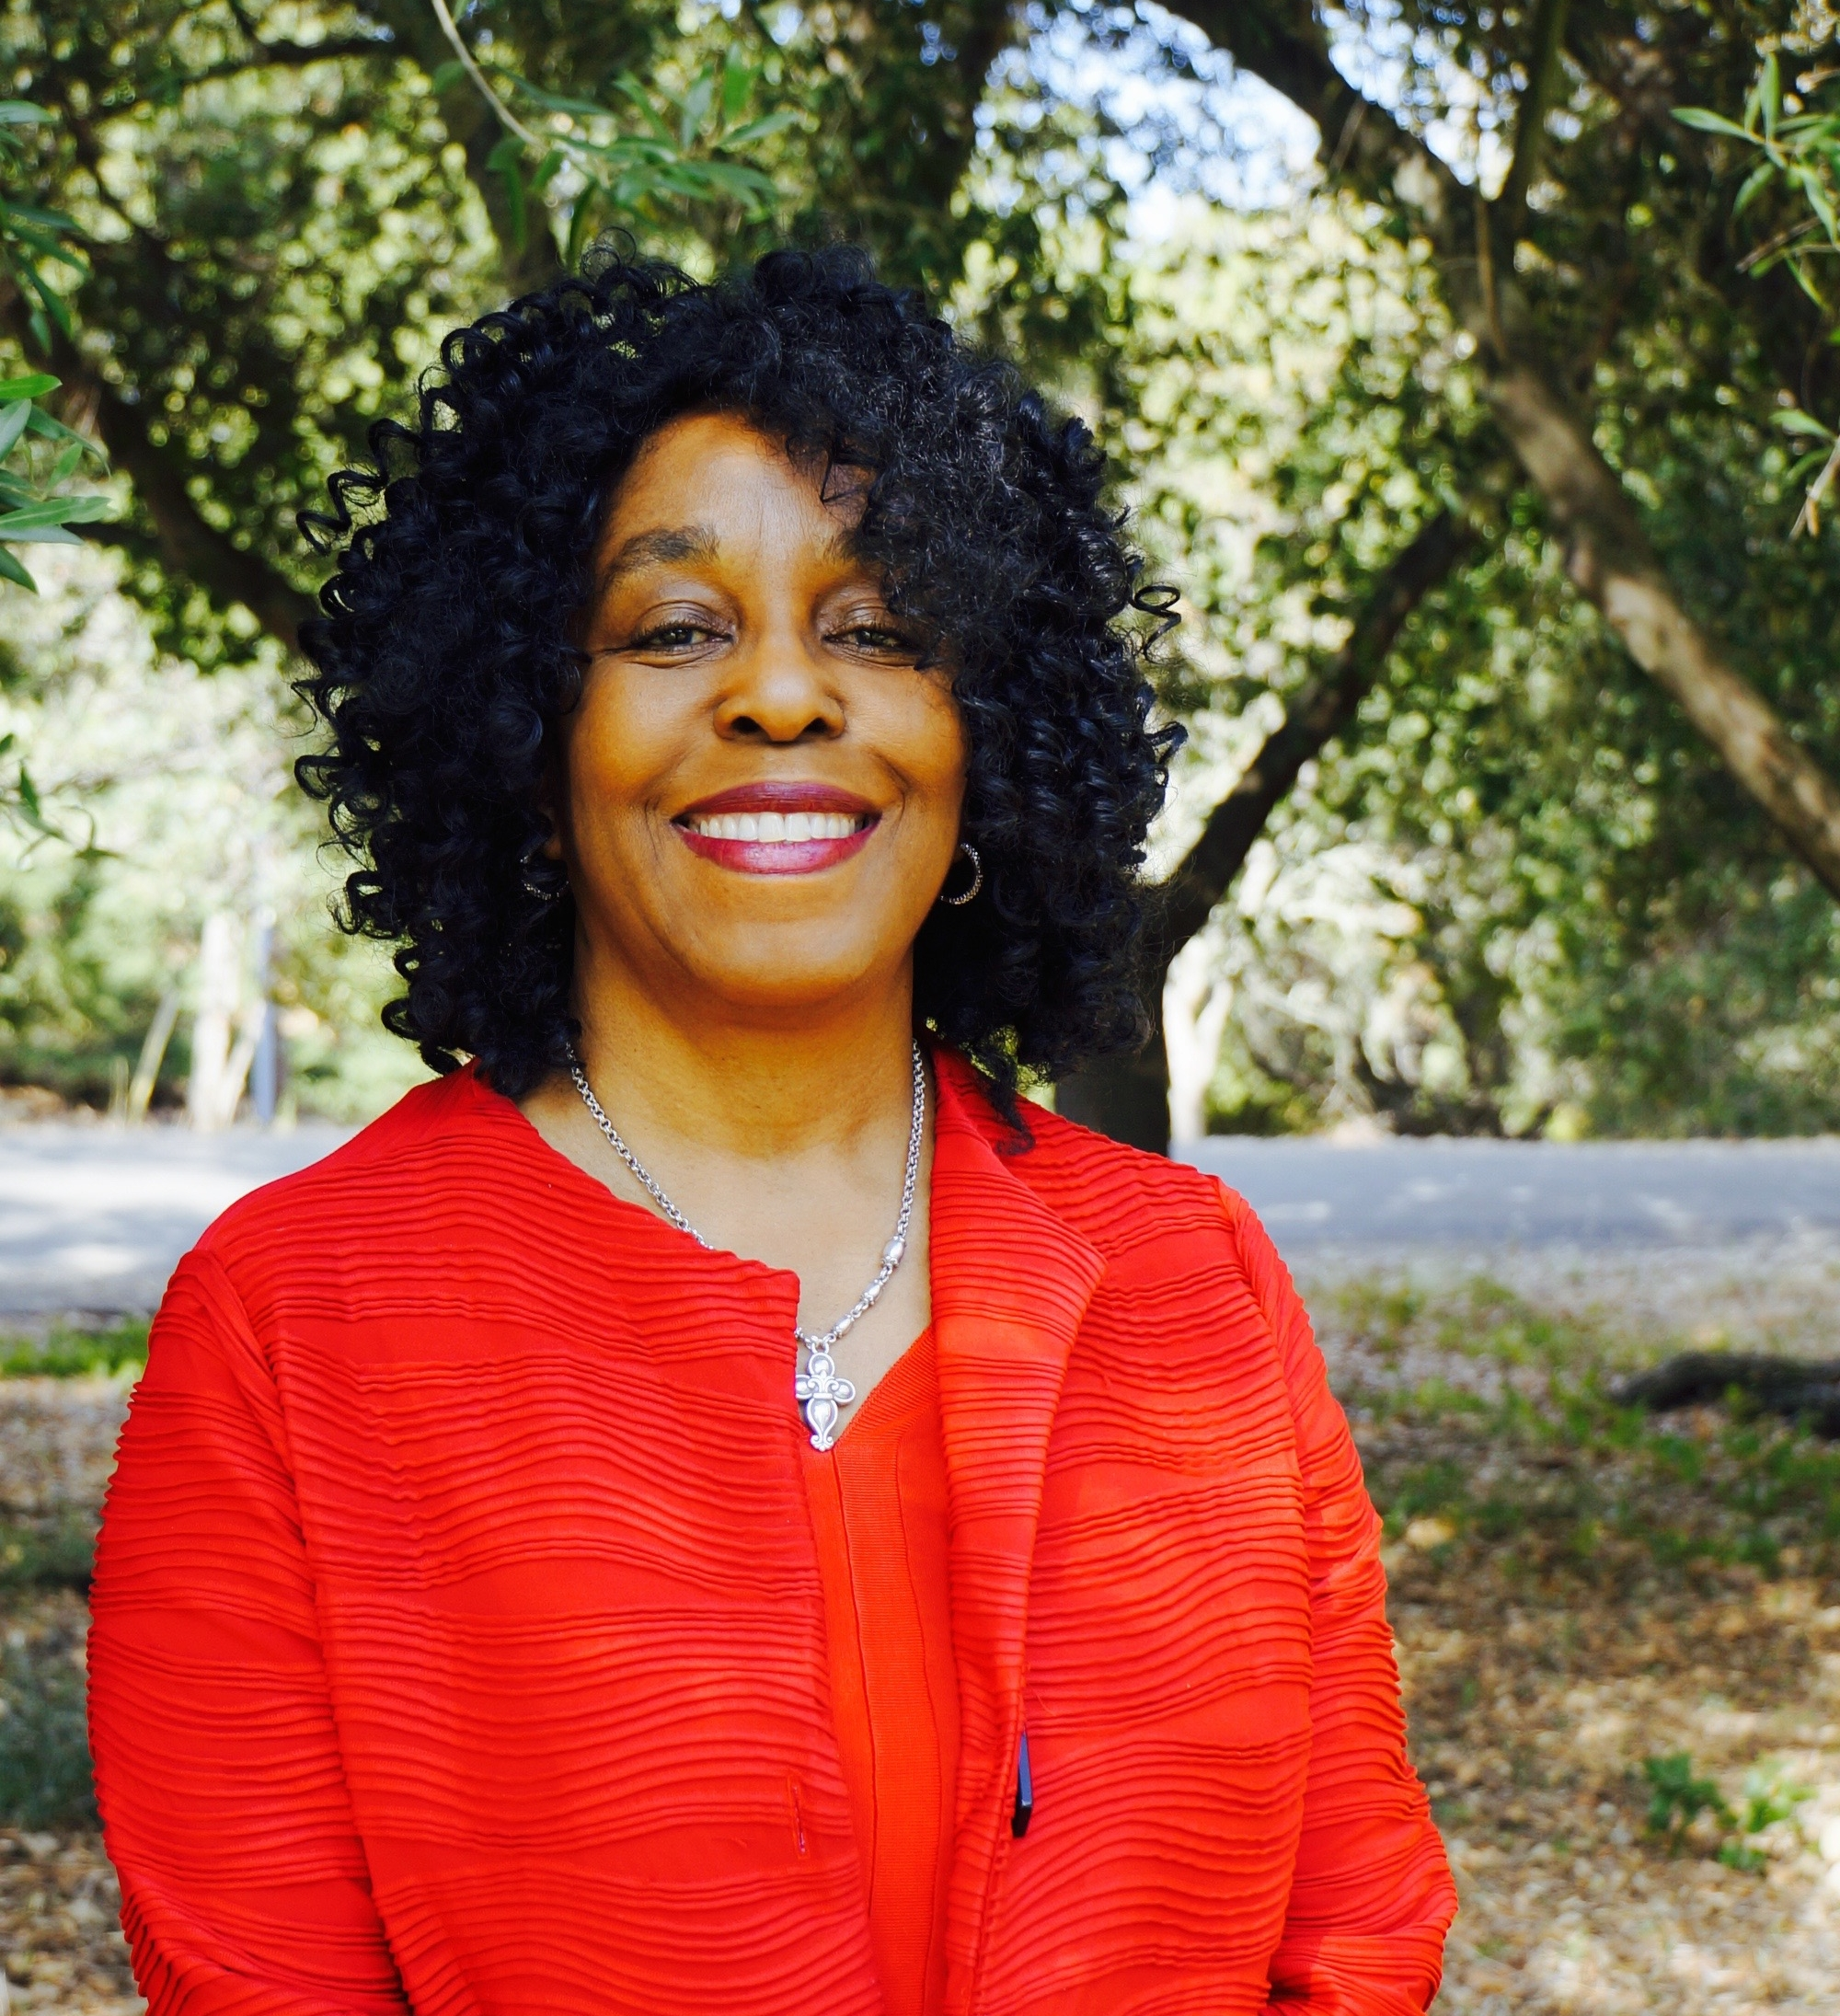 """Brenda E. Stevenson named as William Andrews clark Professor2019-2020 - Brenda E. Stevenson, alongside Sharla Fett of Occidental College, has been named as a William Andrews Clark Professor, 2019-2020. Together, the scholars will organize a series of three conferences geared toward exploring the complex and contested origins of the nation at the Clark Library. The conferences are entitled """"'20. And odd Negroes': African Labor, Colonial Economies, Cultural Pluralities""""; """"'Burgesses to be chosen in all places:' Representative Governance Takes Hold on British Claimed Soil;"""" and """"'Respectable' Women': Gender, Family, Labor, Resistance and the Metanarrative of Patriarchy,"""" respectively."""